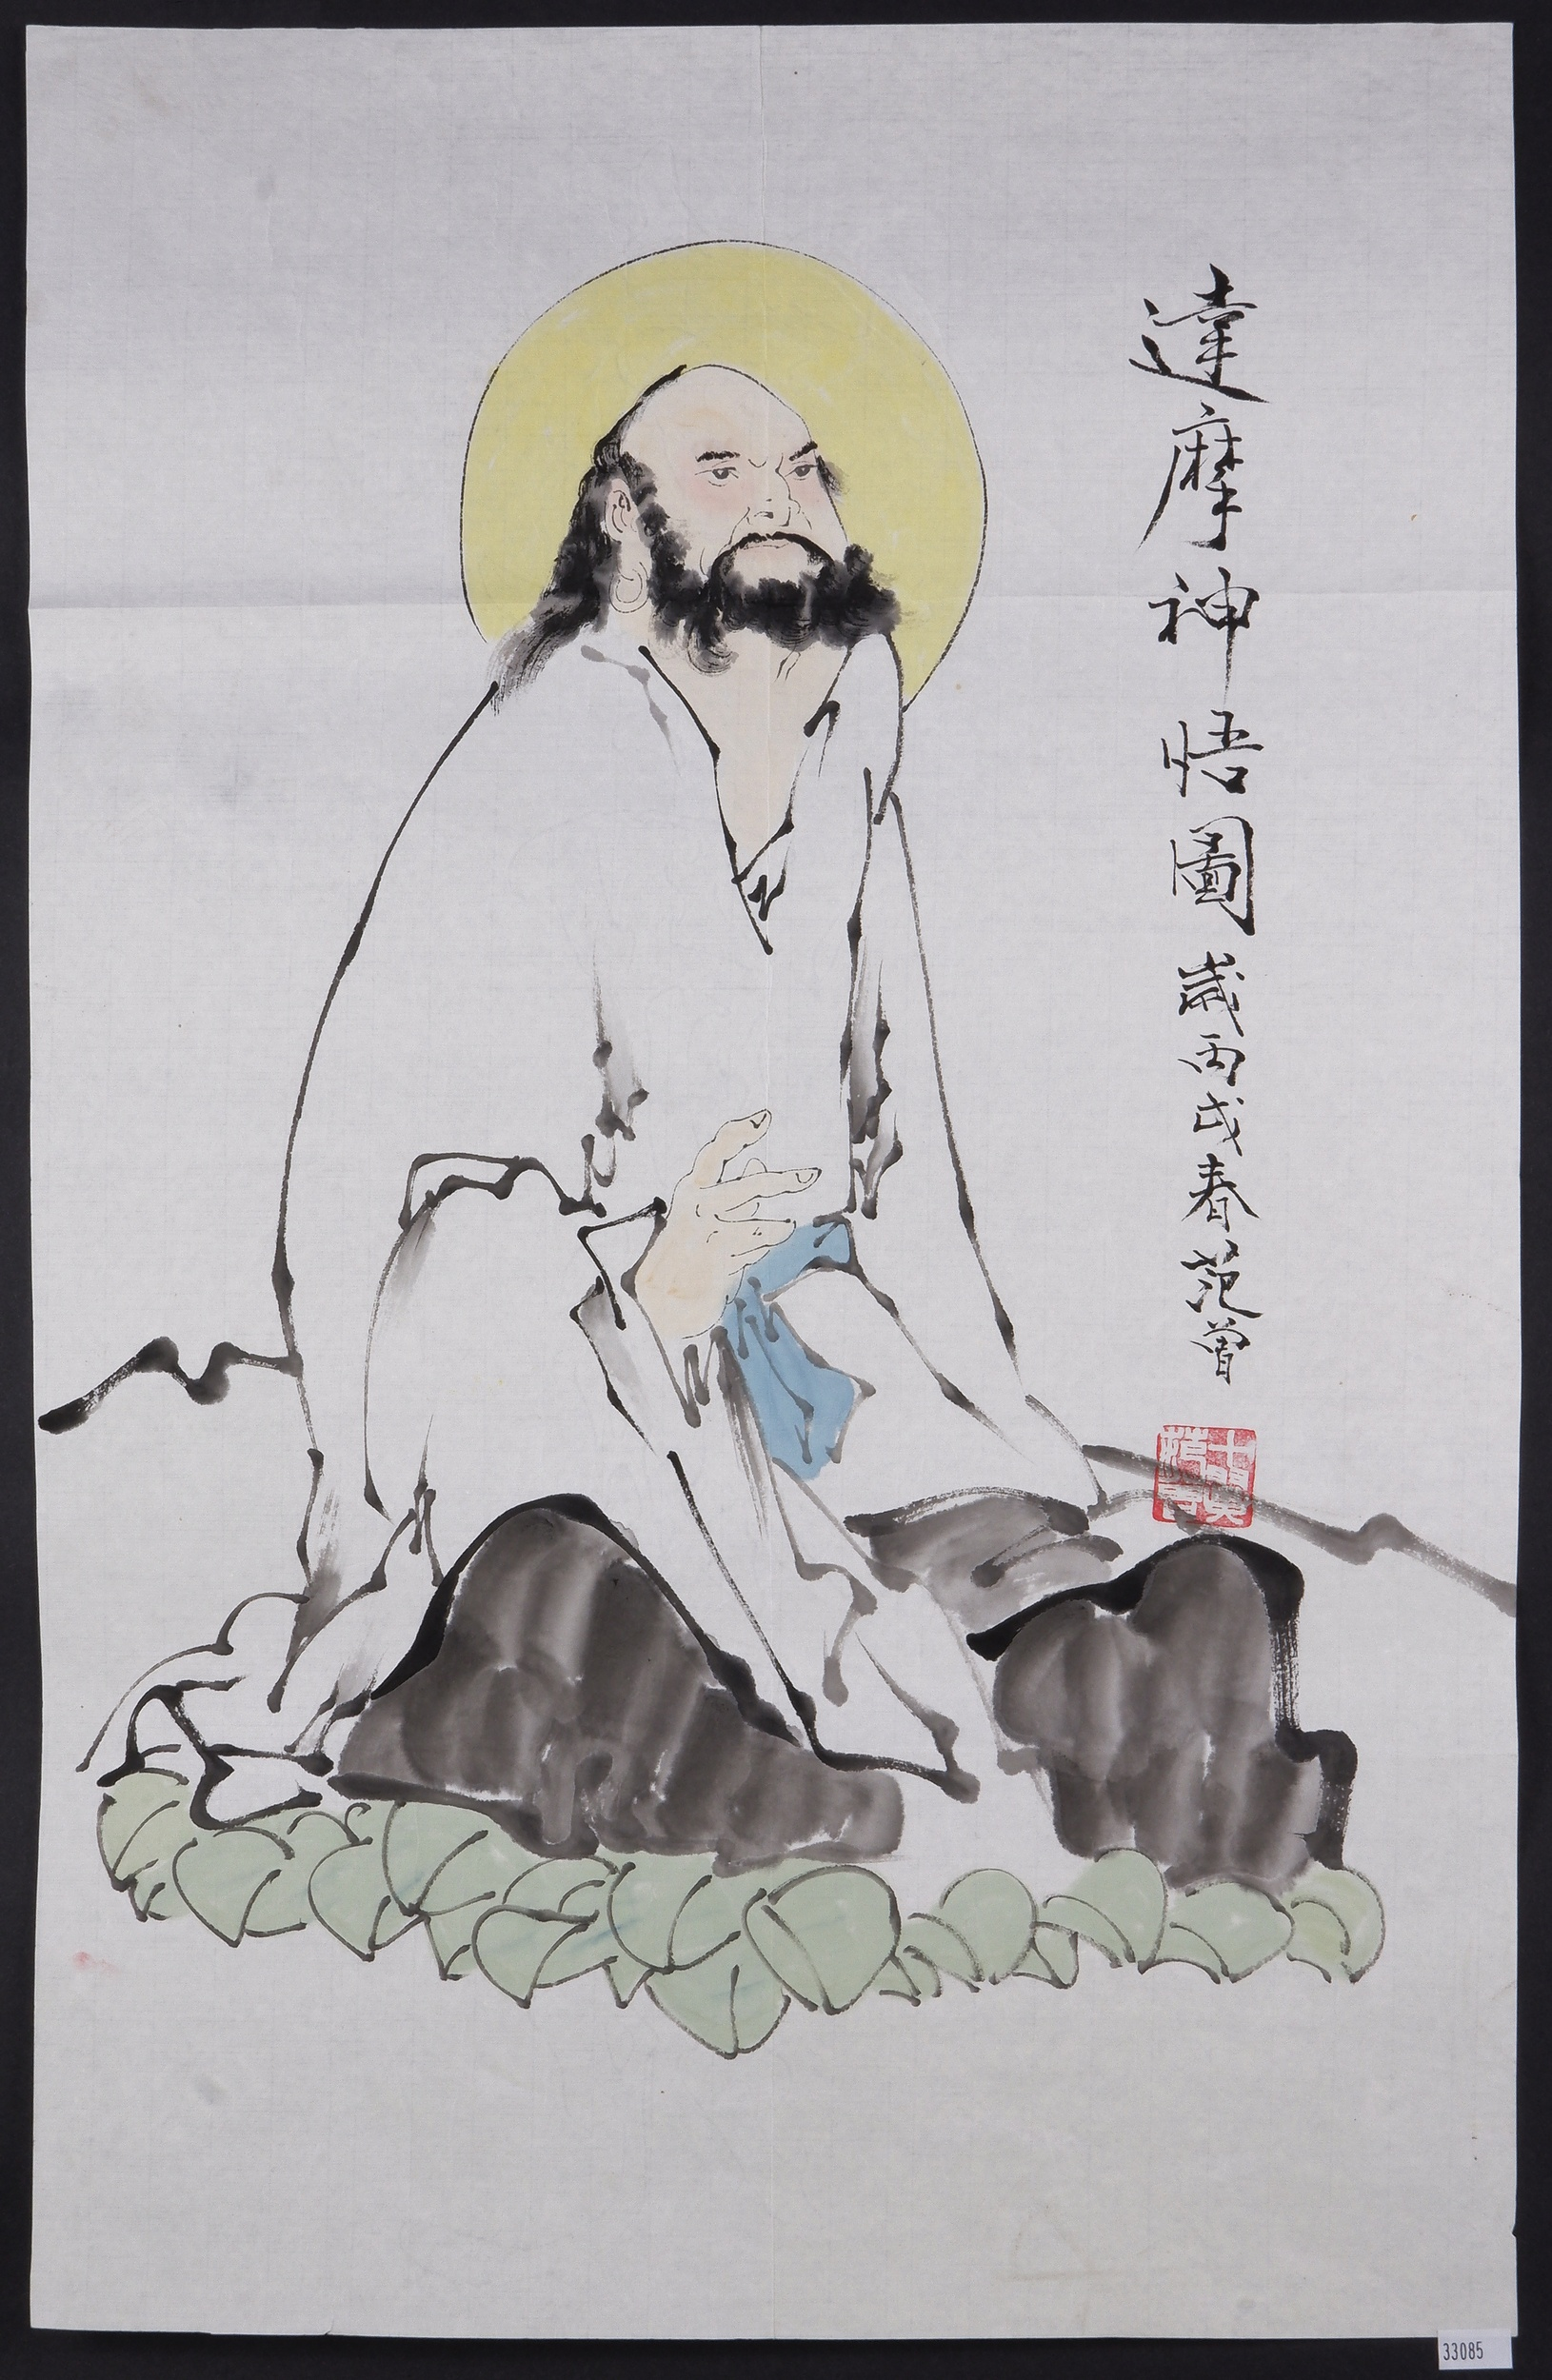 'Fan Zeng (Chinese 1938-) Unframed Ink and Colour on Paper with Certificate'